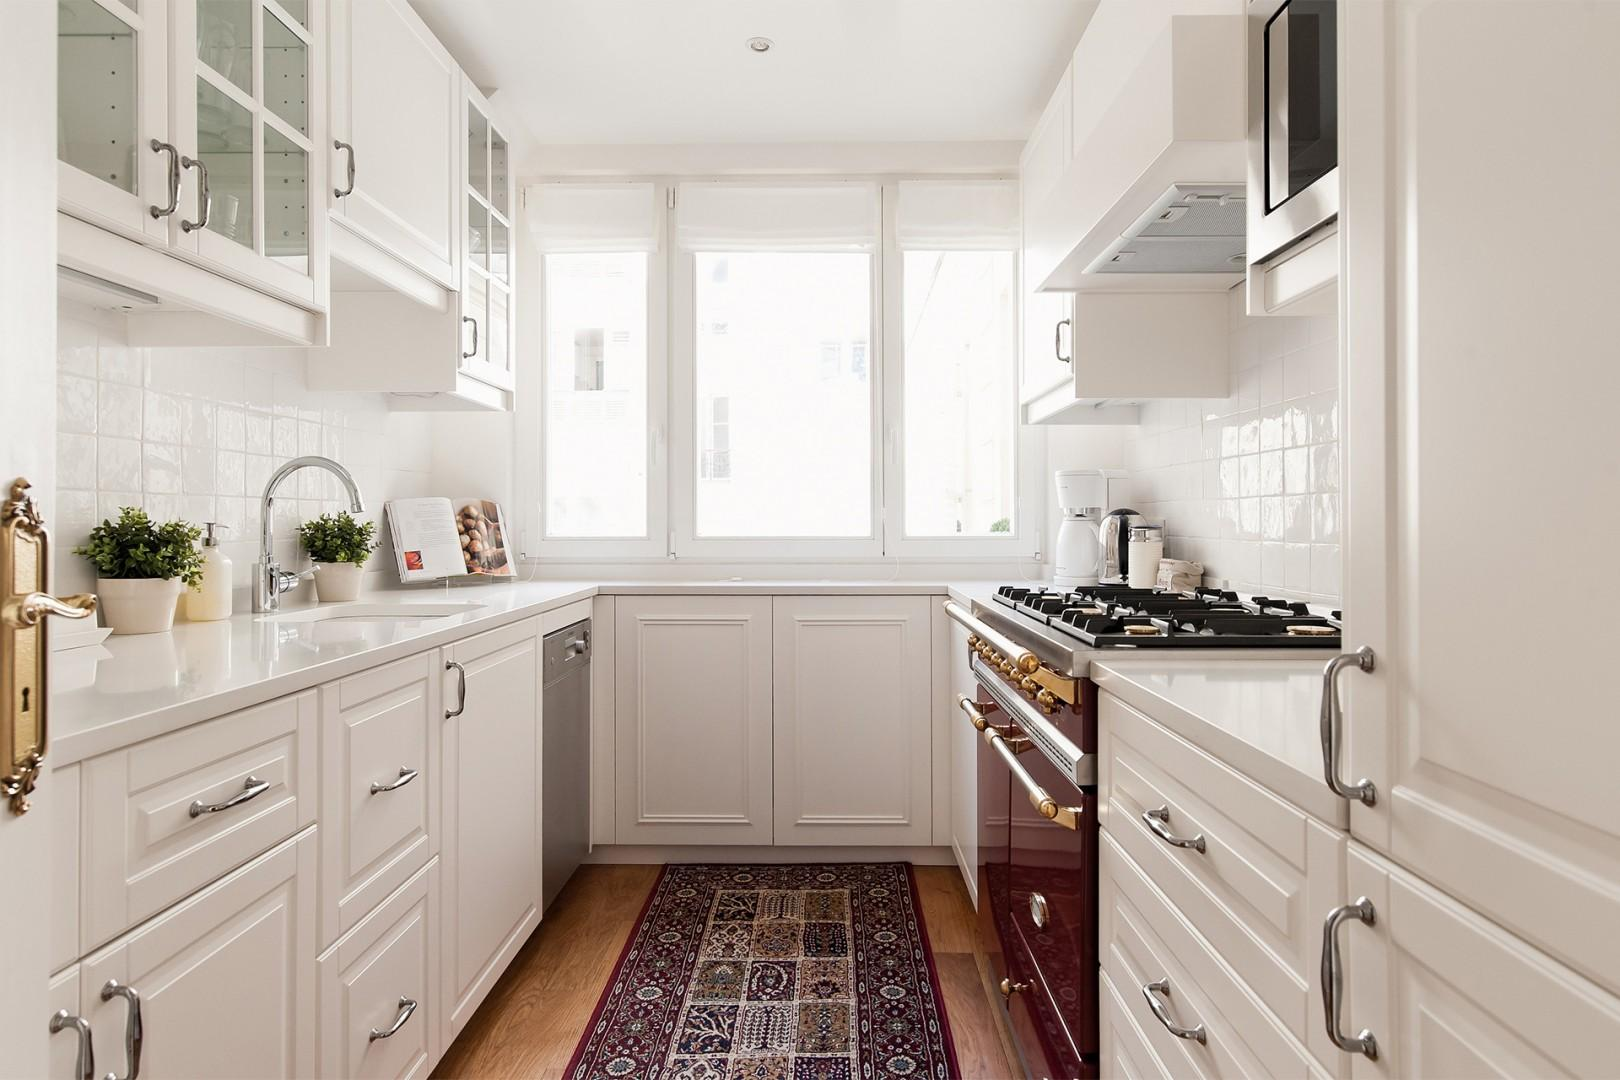 The kitchen comes with plenty of storage cabinets.